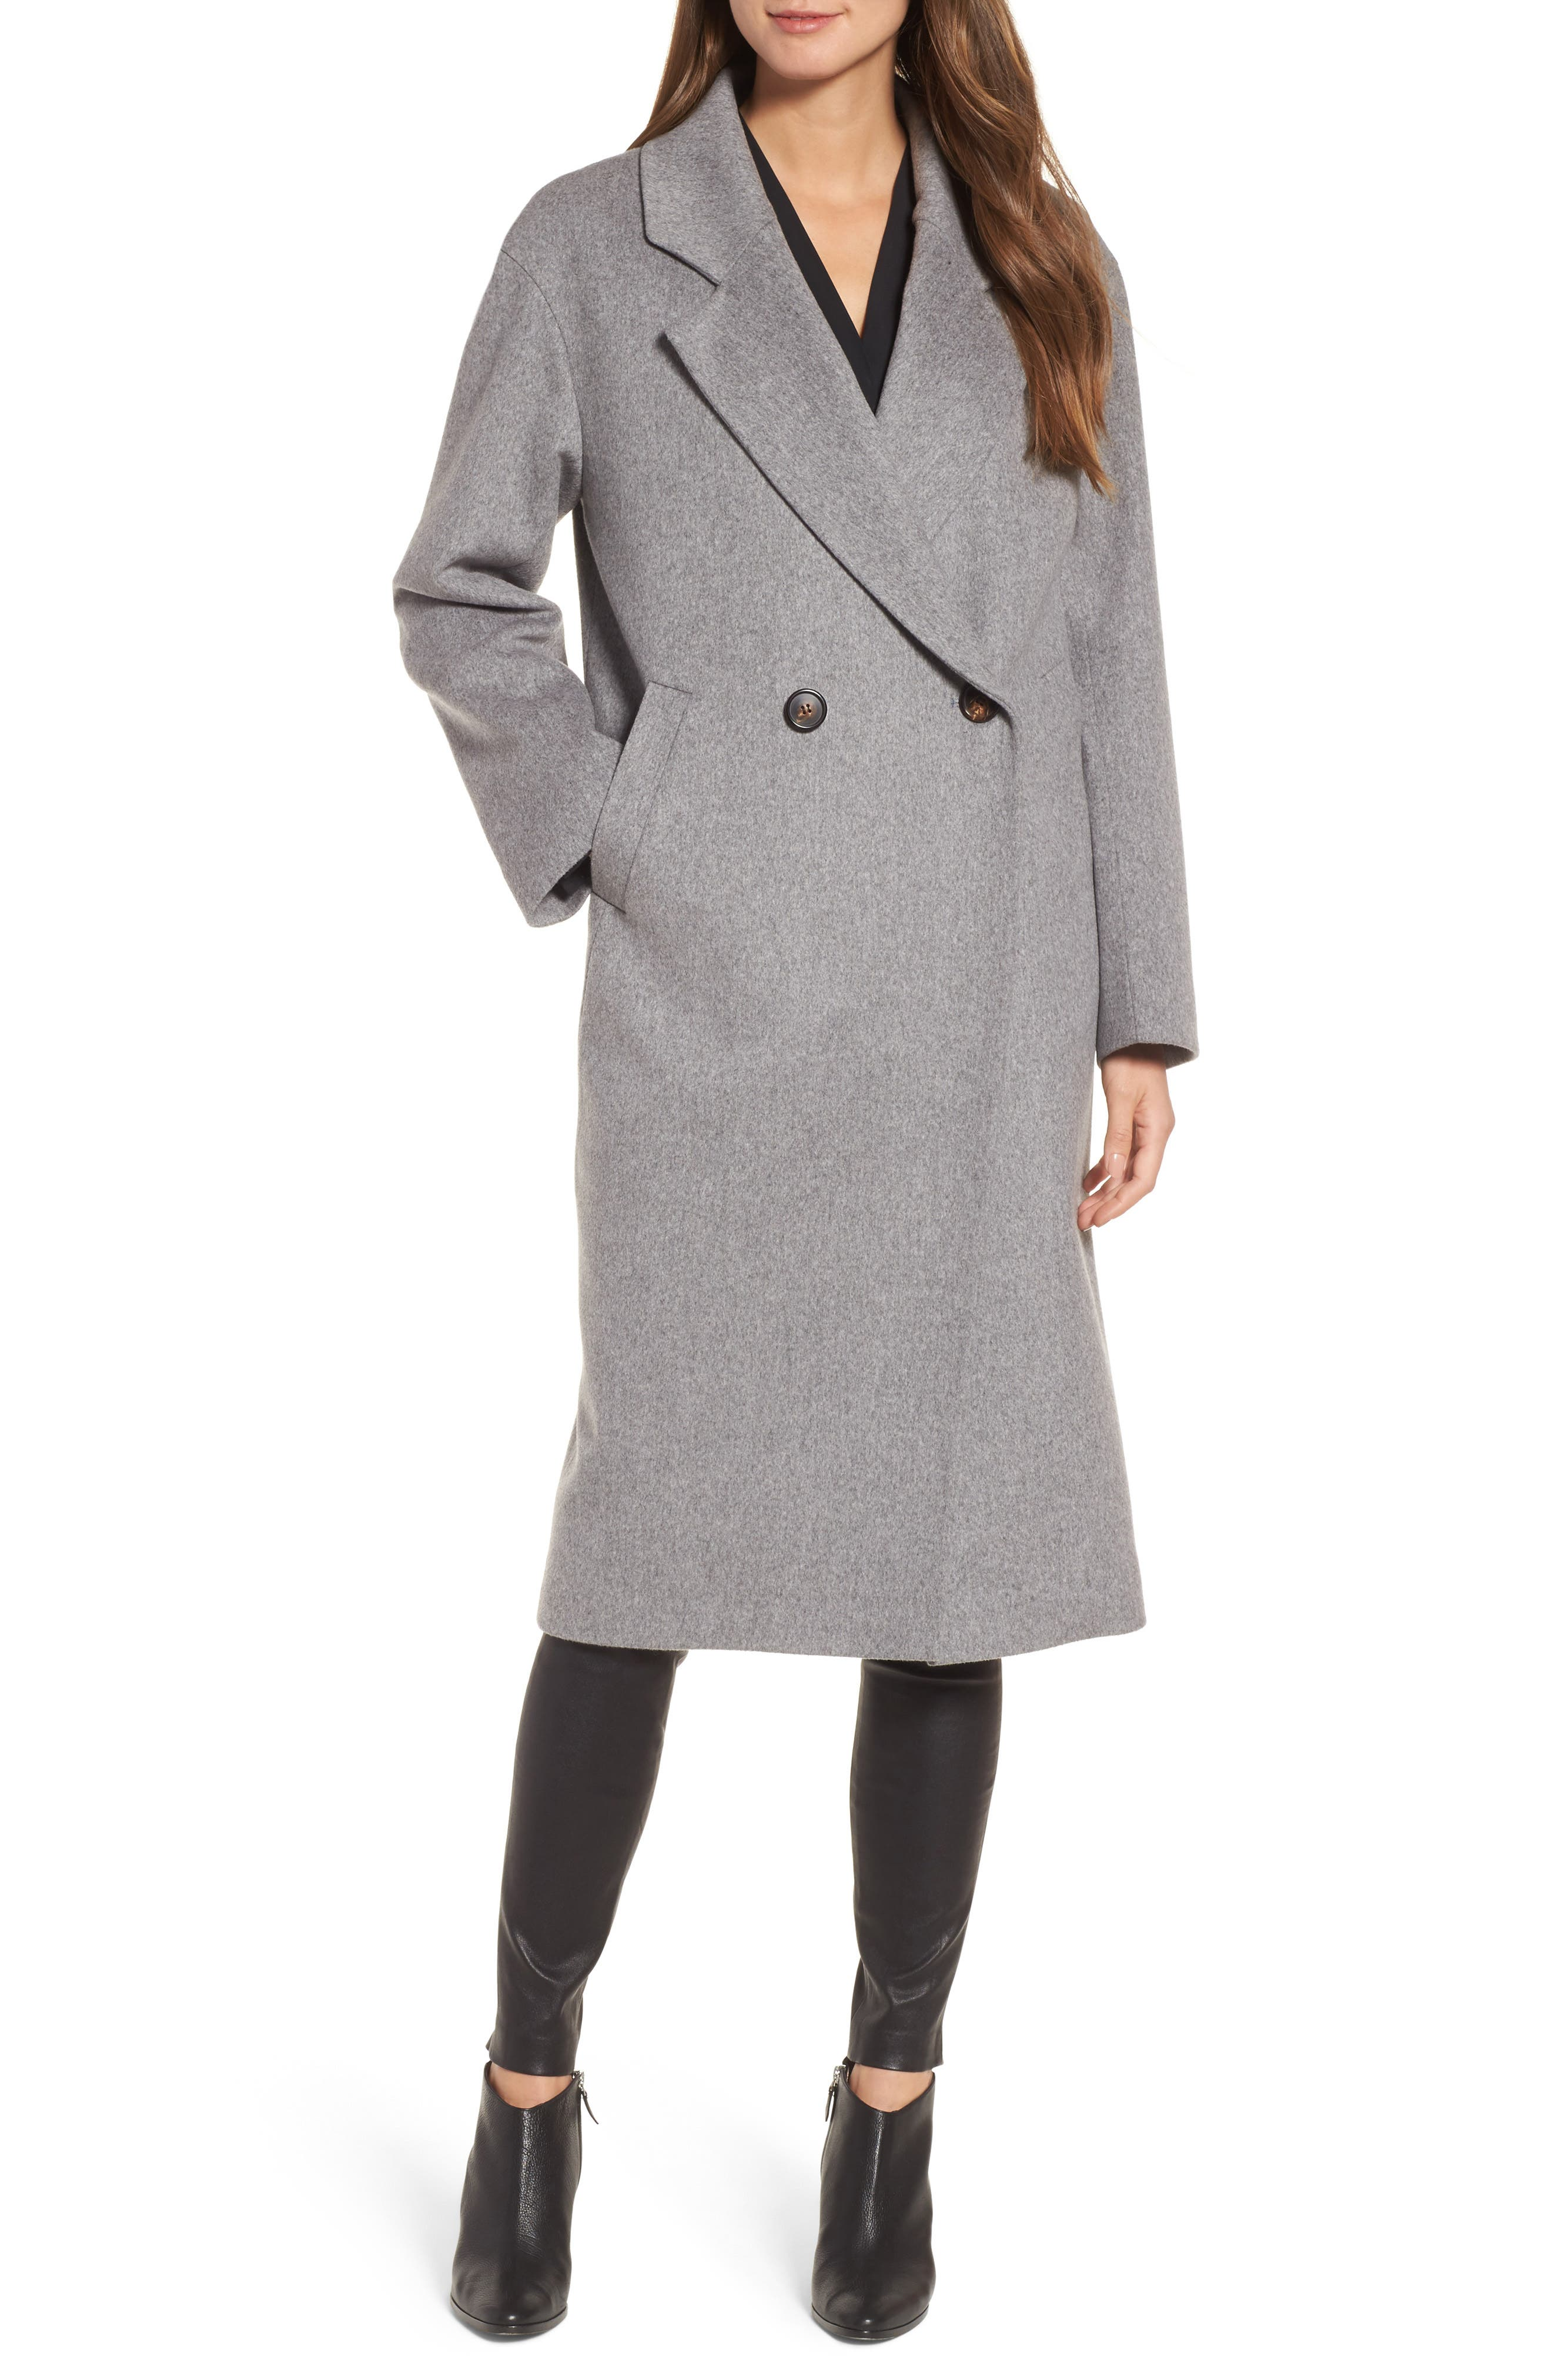 45 Loro Piana Wool Coat,                             Main thumbnail 1, color,                             080